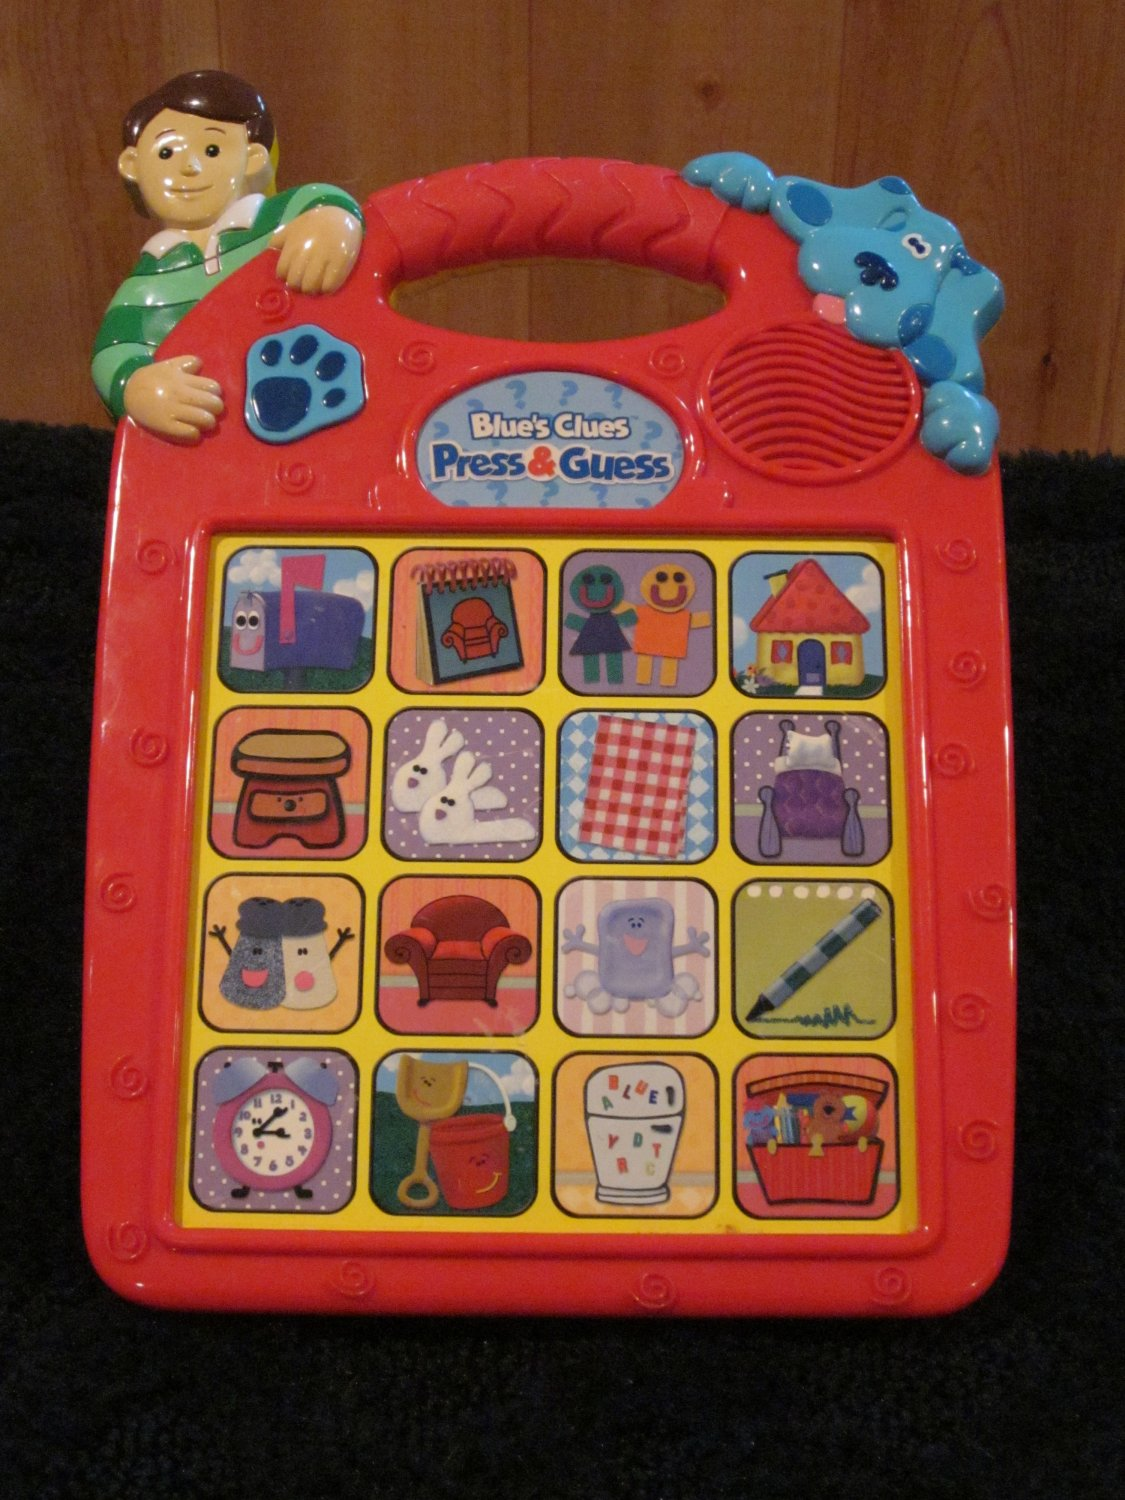 Blues Clues Press & Guess Electronic Game